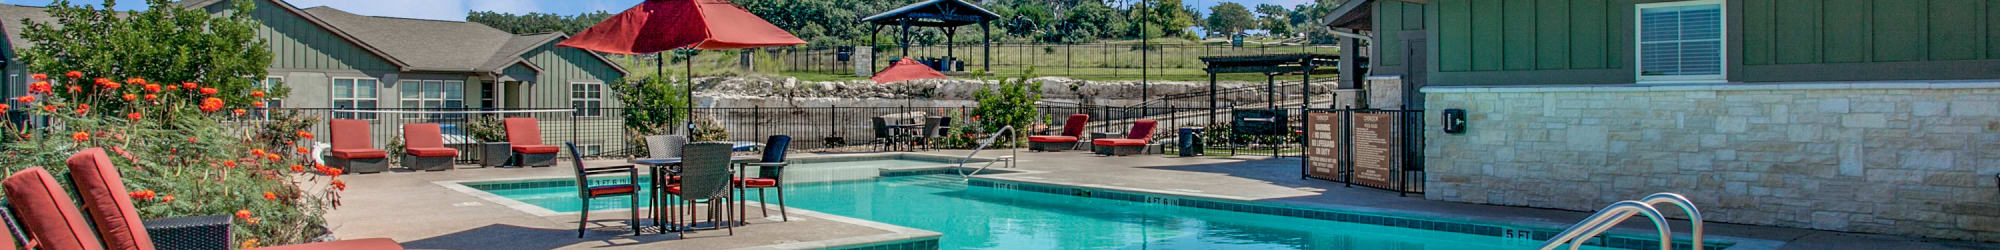 Contact us at Overlook at Stone Oak Park in San Antonio, Texas